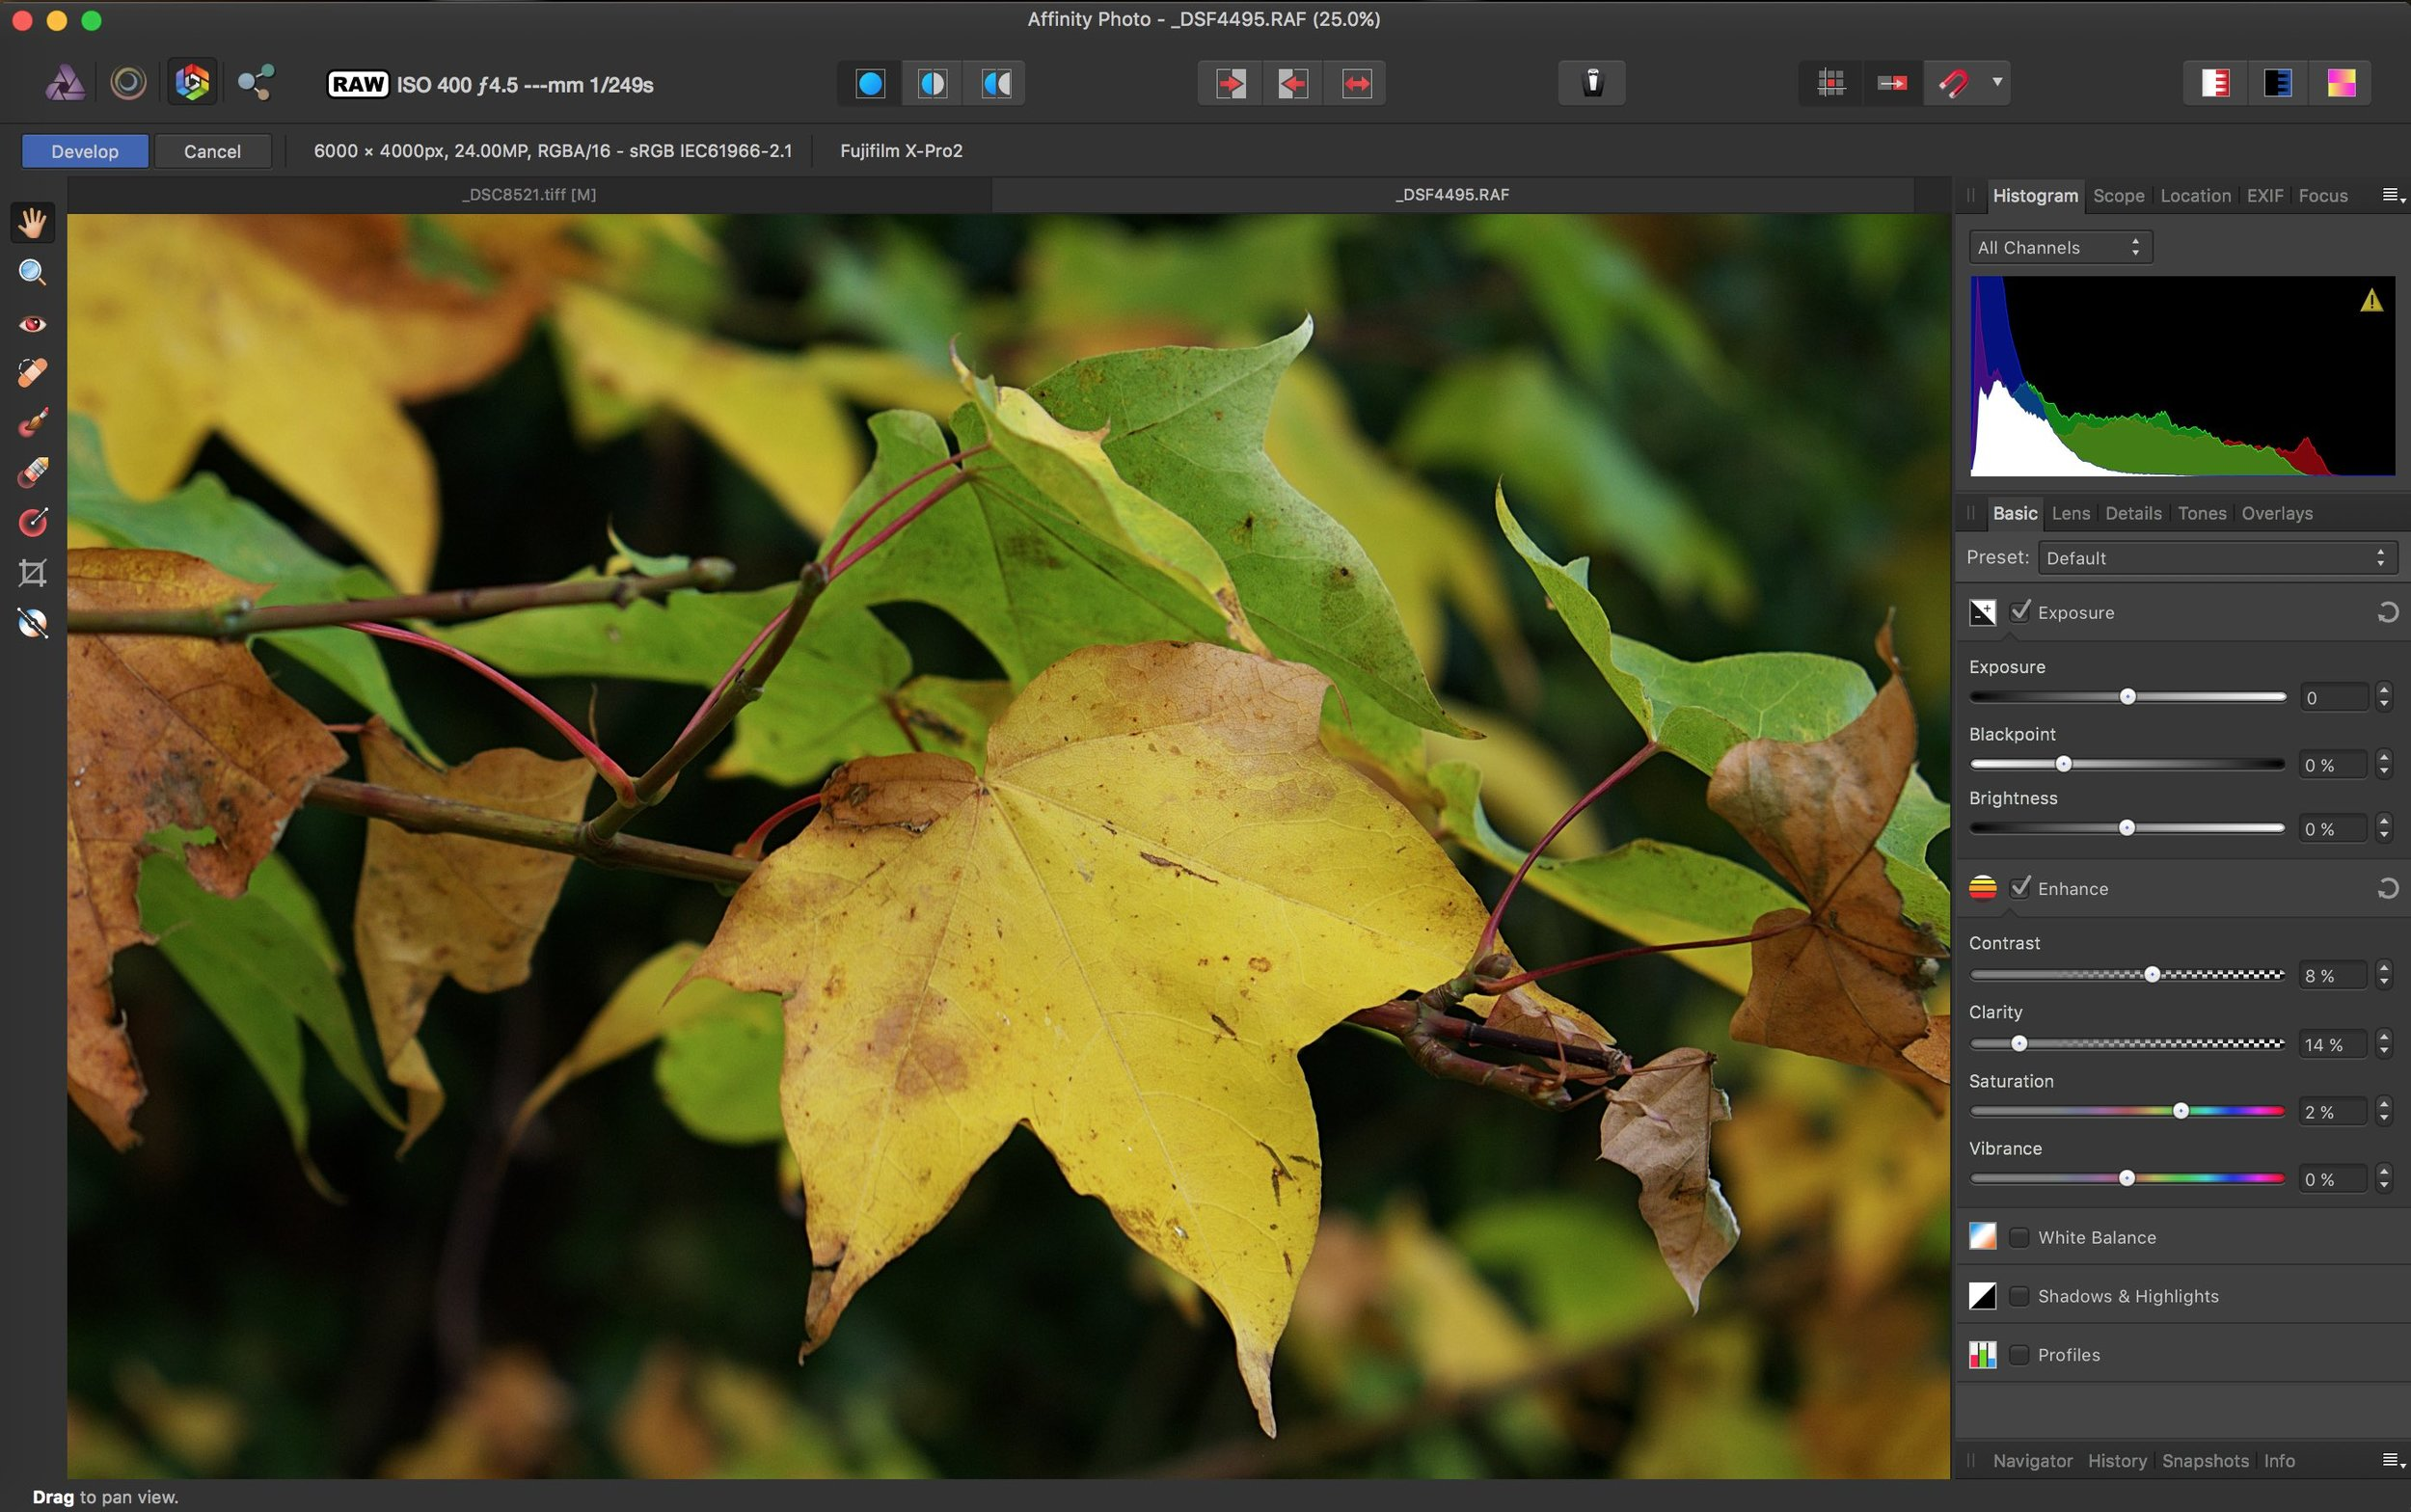 How to edit X-Pro 2 raw files in Affinity Photo